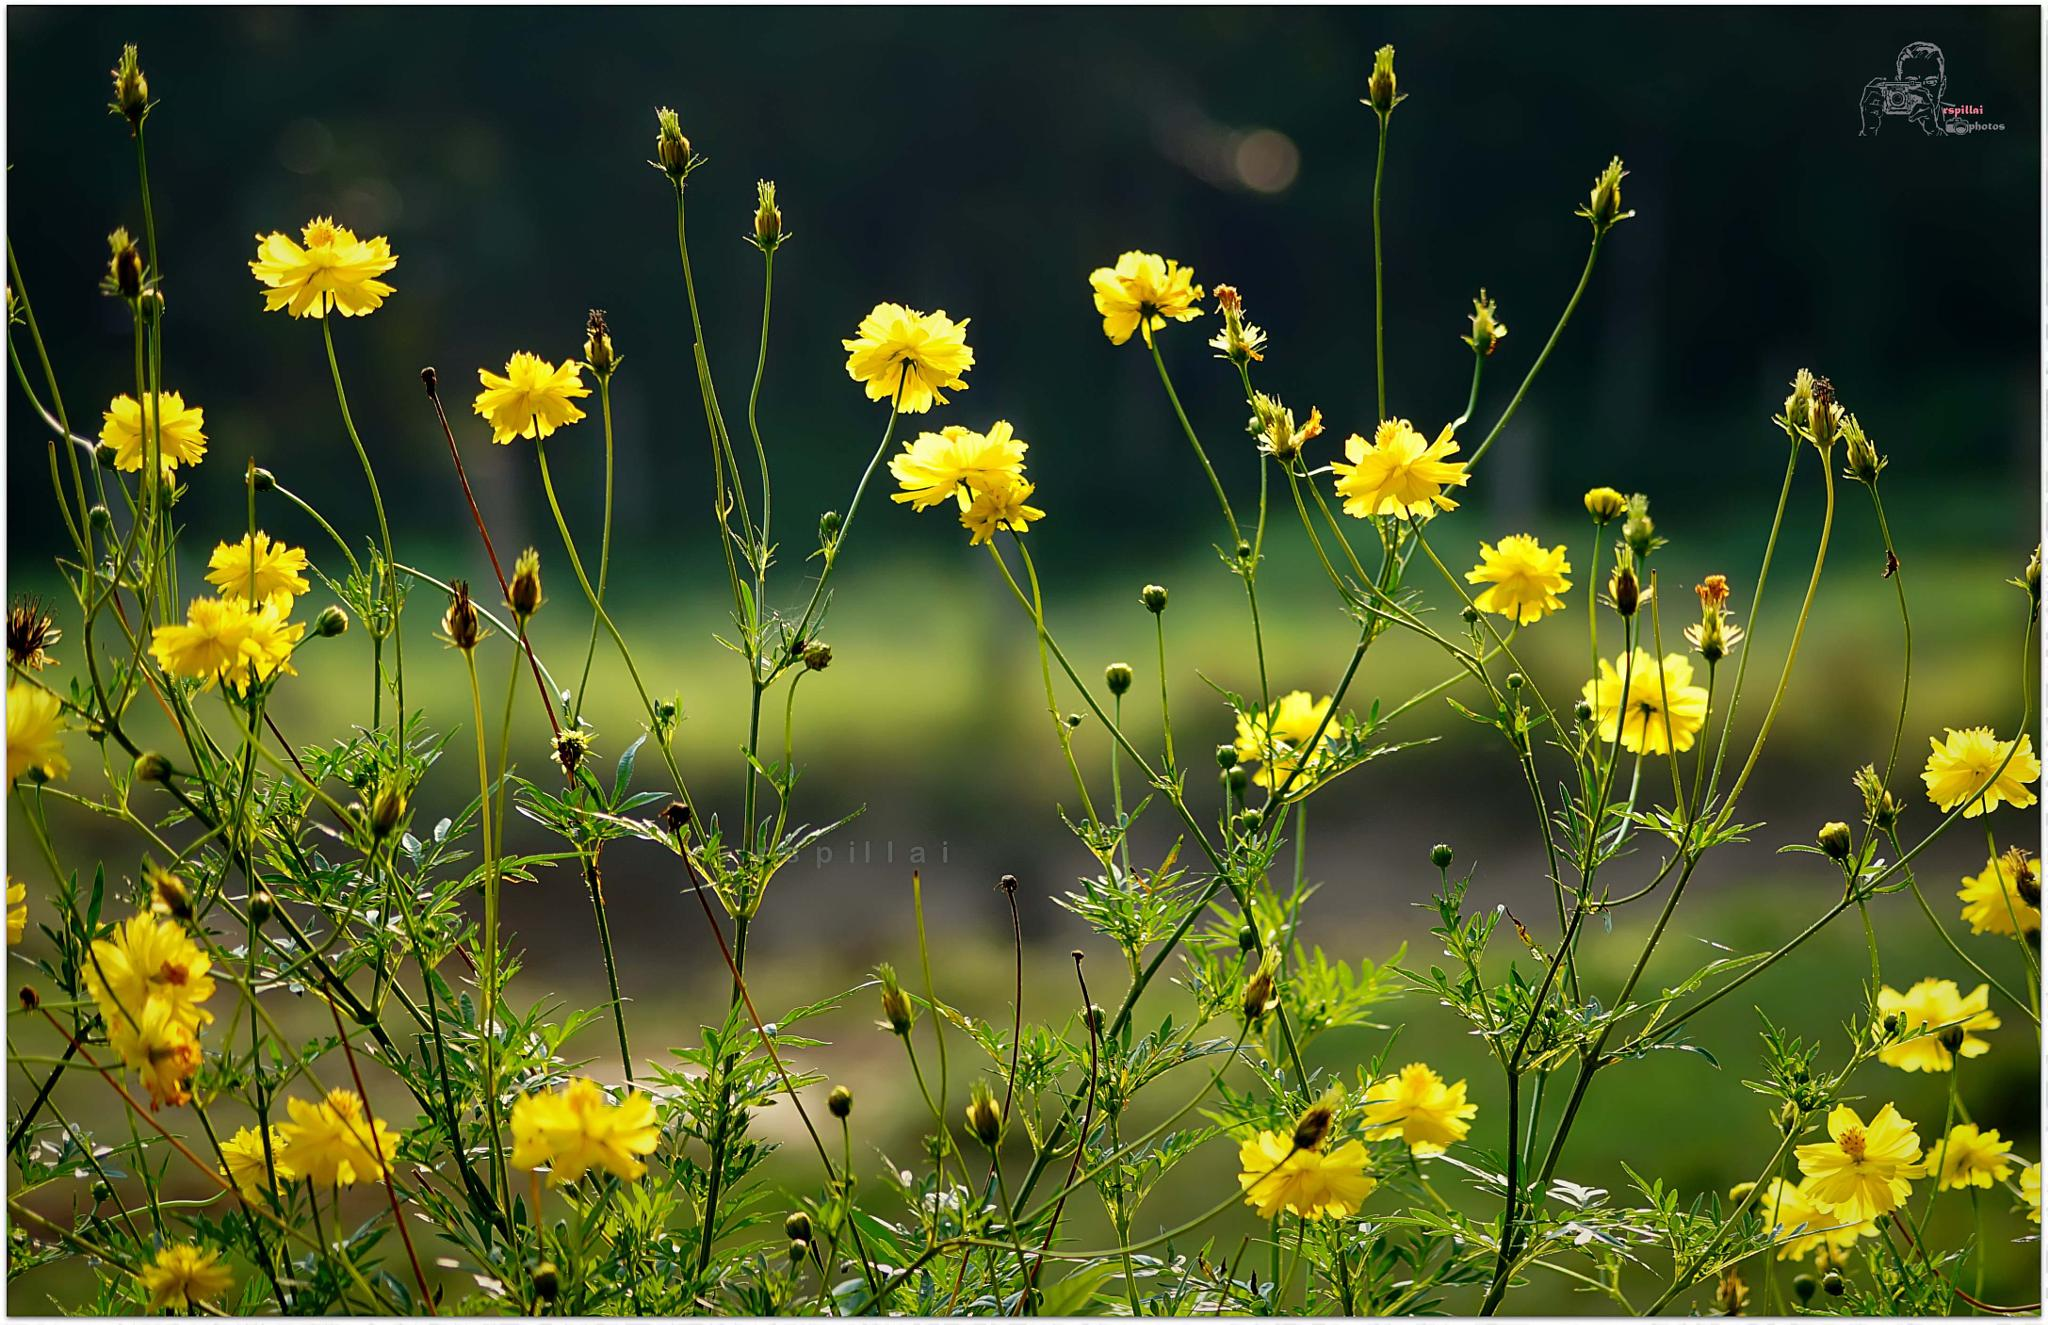 flowers by renjith sreedharan pillai